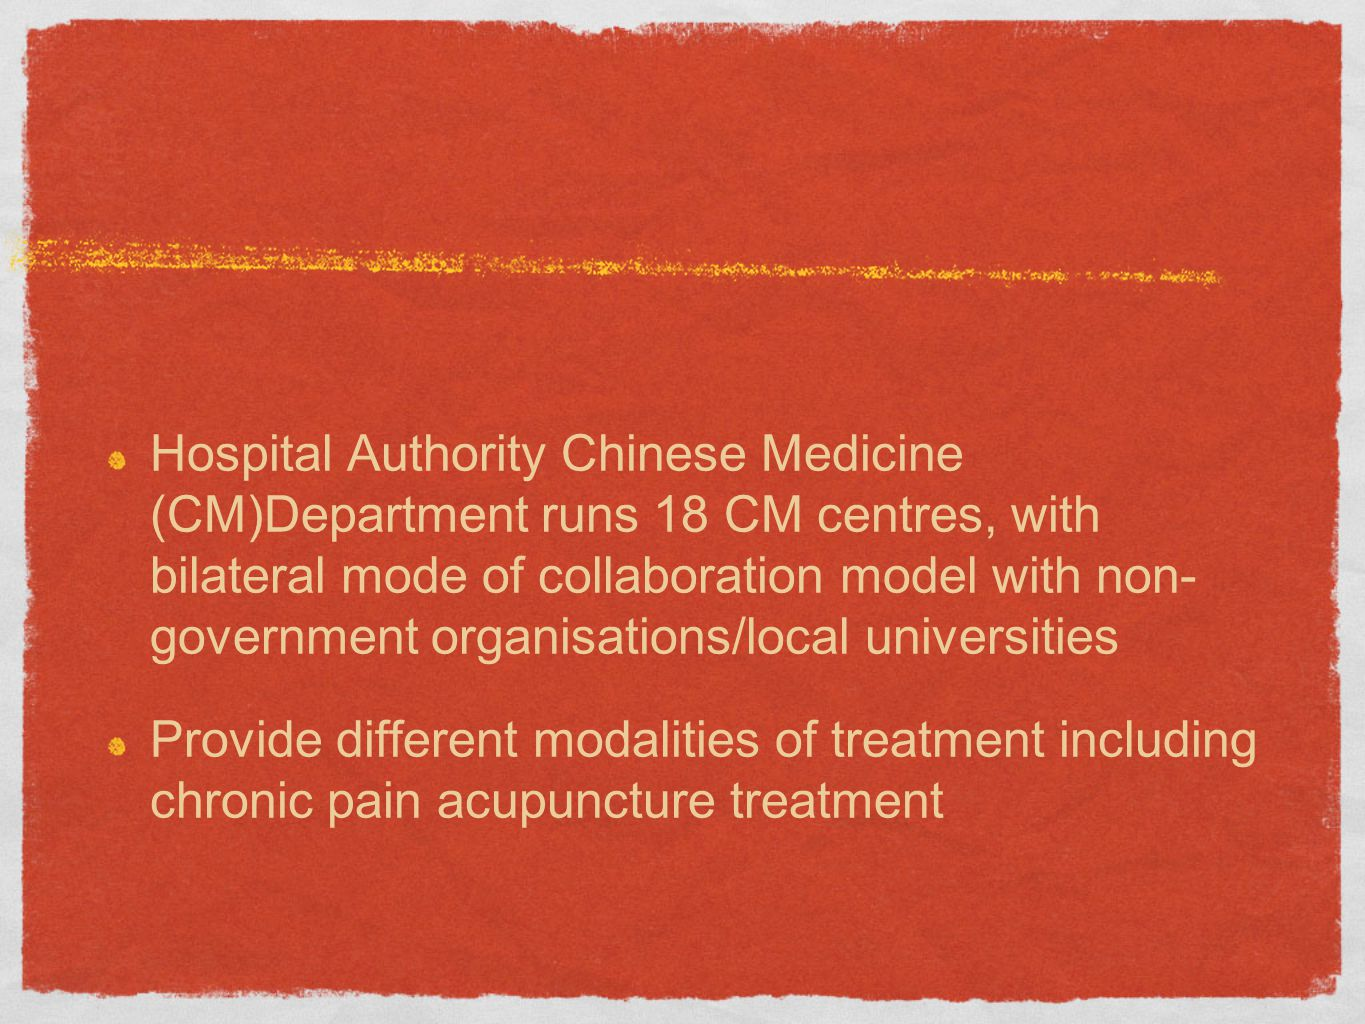 Hospital Authority Chinese Medicine (CM)Department runs 18 CM centres, with bilateral mode of collaboration model with non- government organisations/local universities Provide different modalities of treatment including chronic pain acupuncture treatment